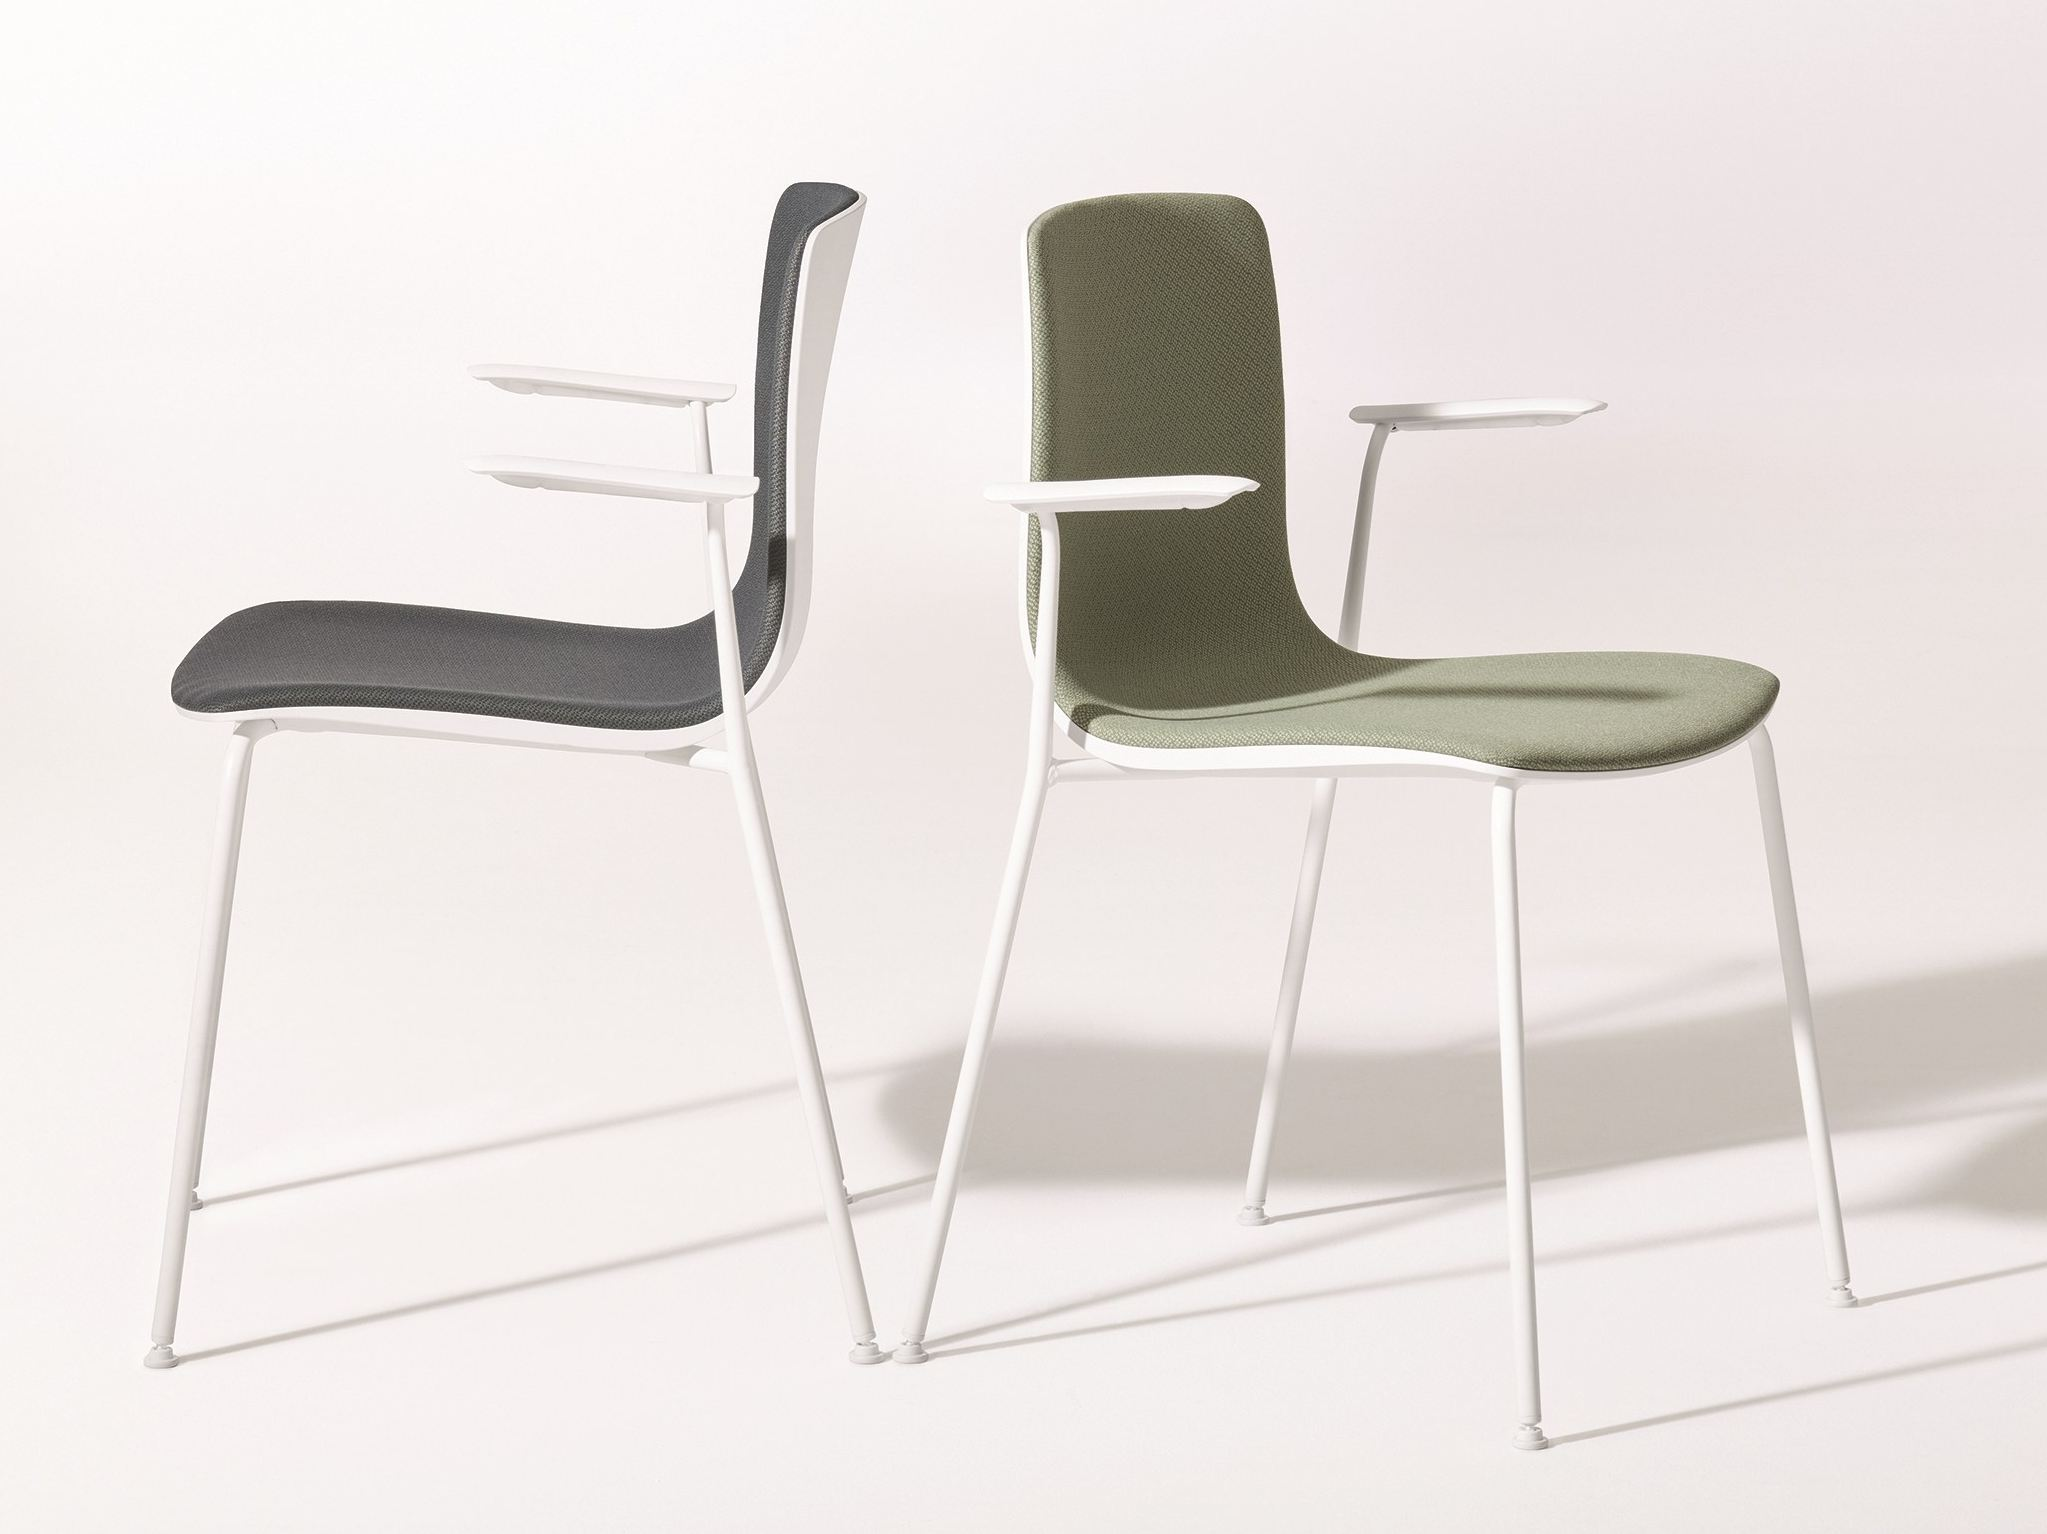 Tables and Chairs by arper